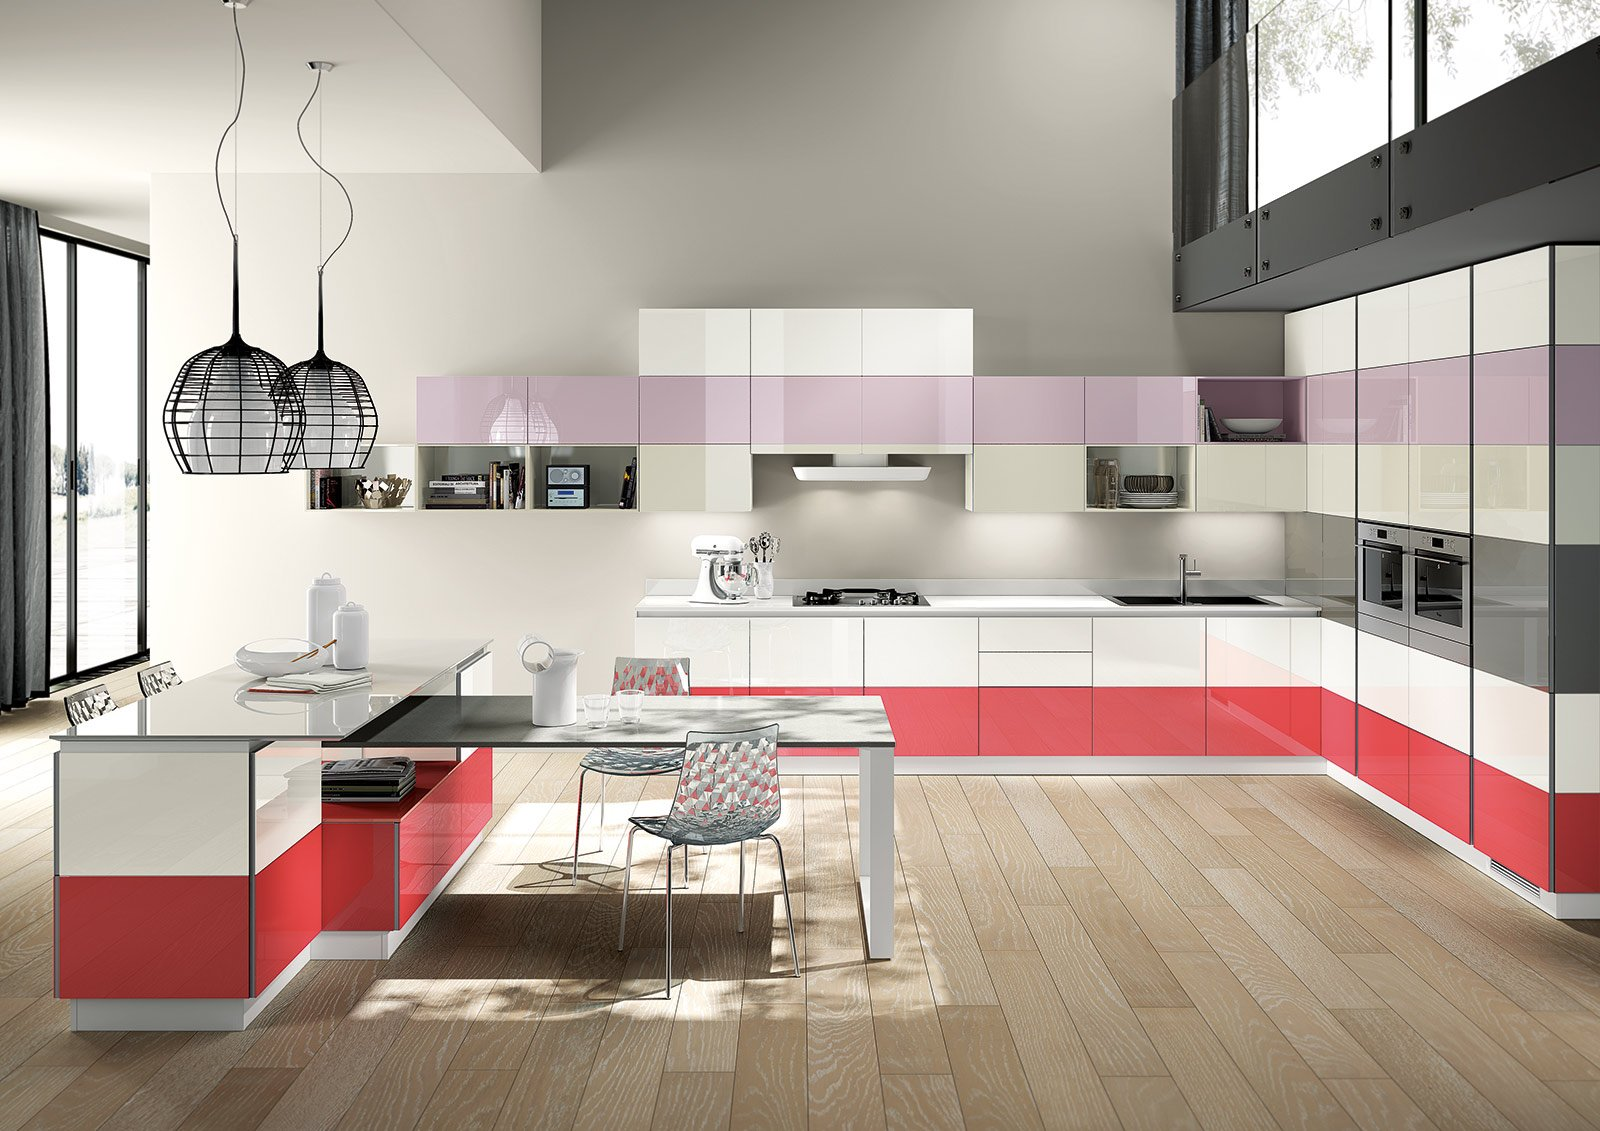 Cucine colorate come un quadro contemporaneo cose di casa - Scavolini cucine ...